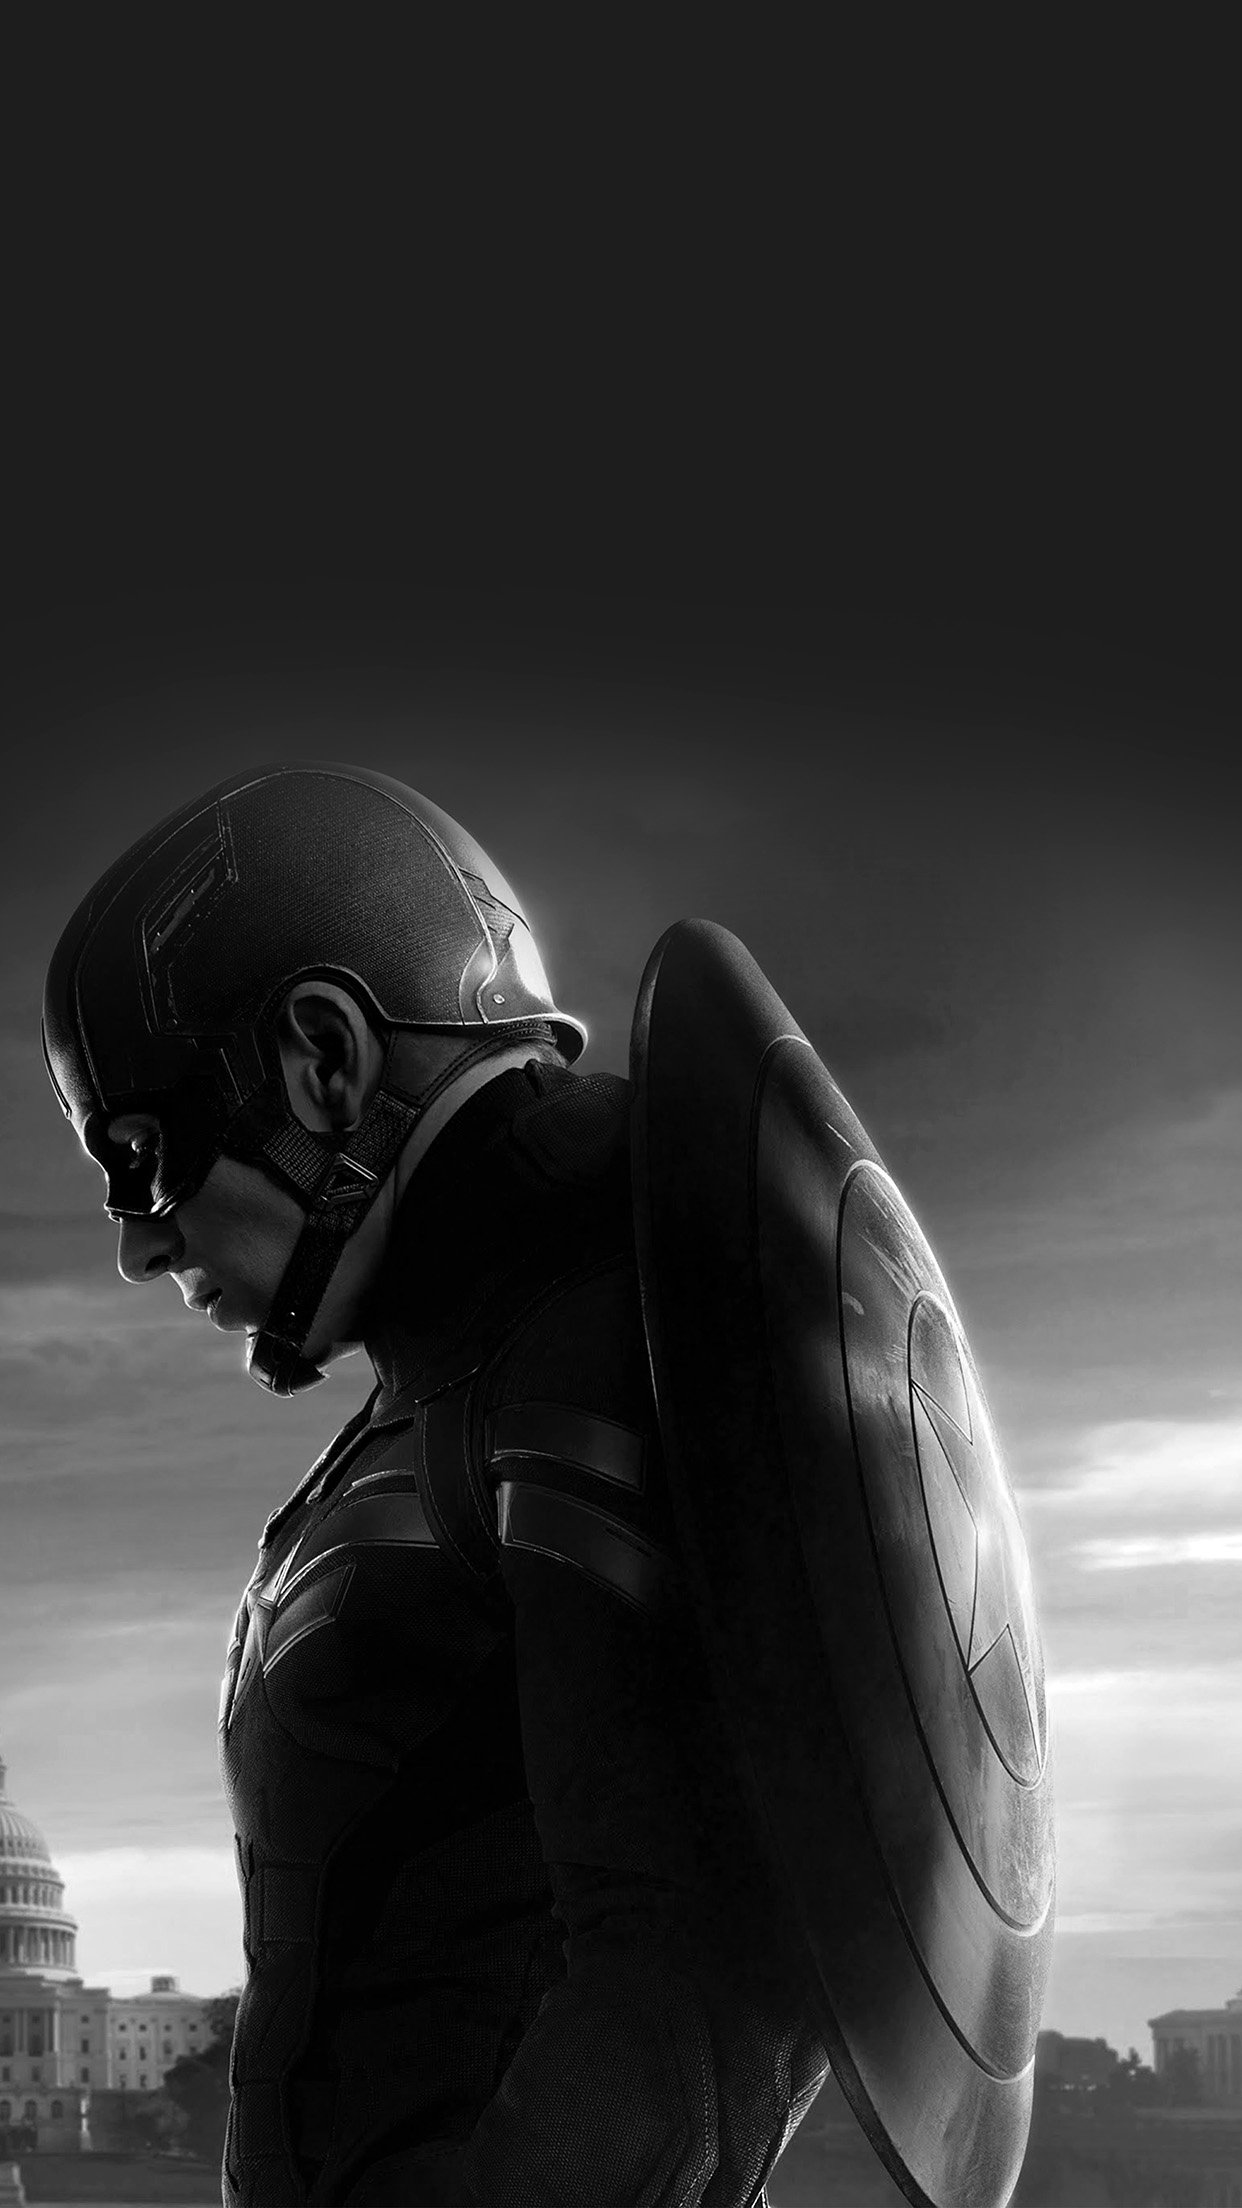 captain america sad hero film marvel dark bw android wallpaper android hd wallpapers